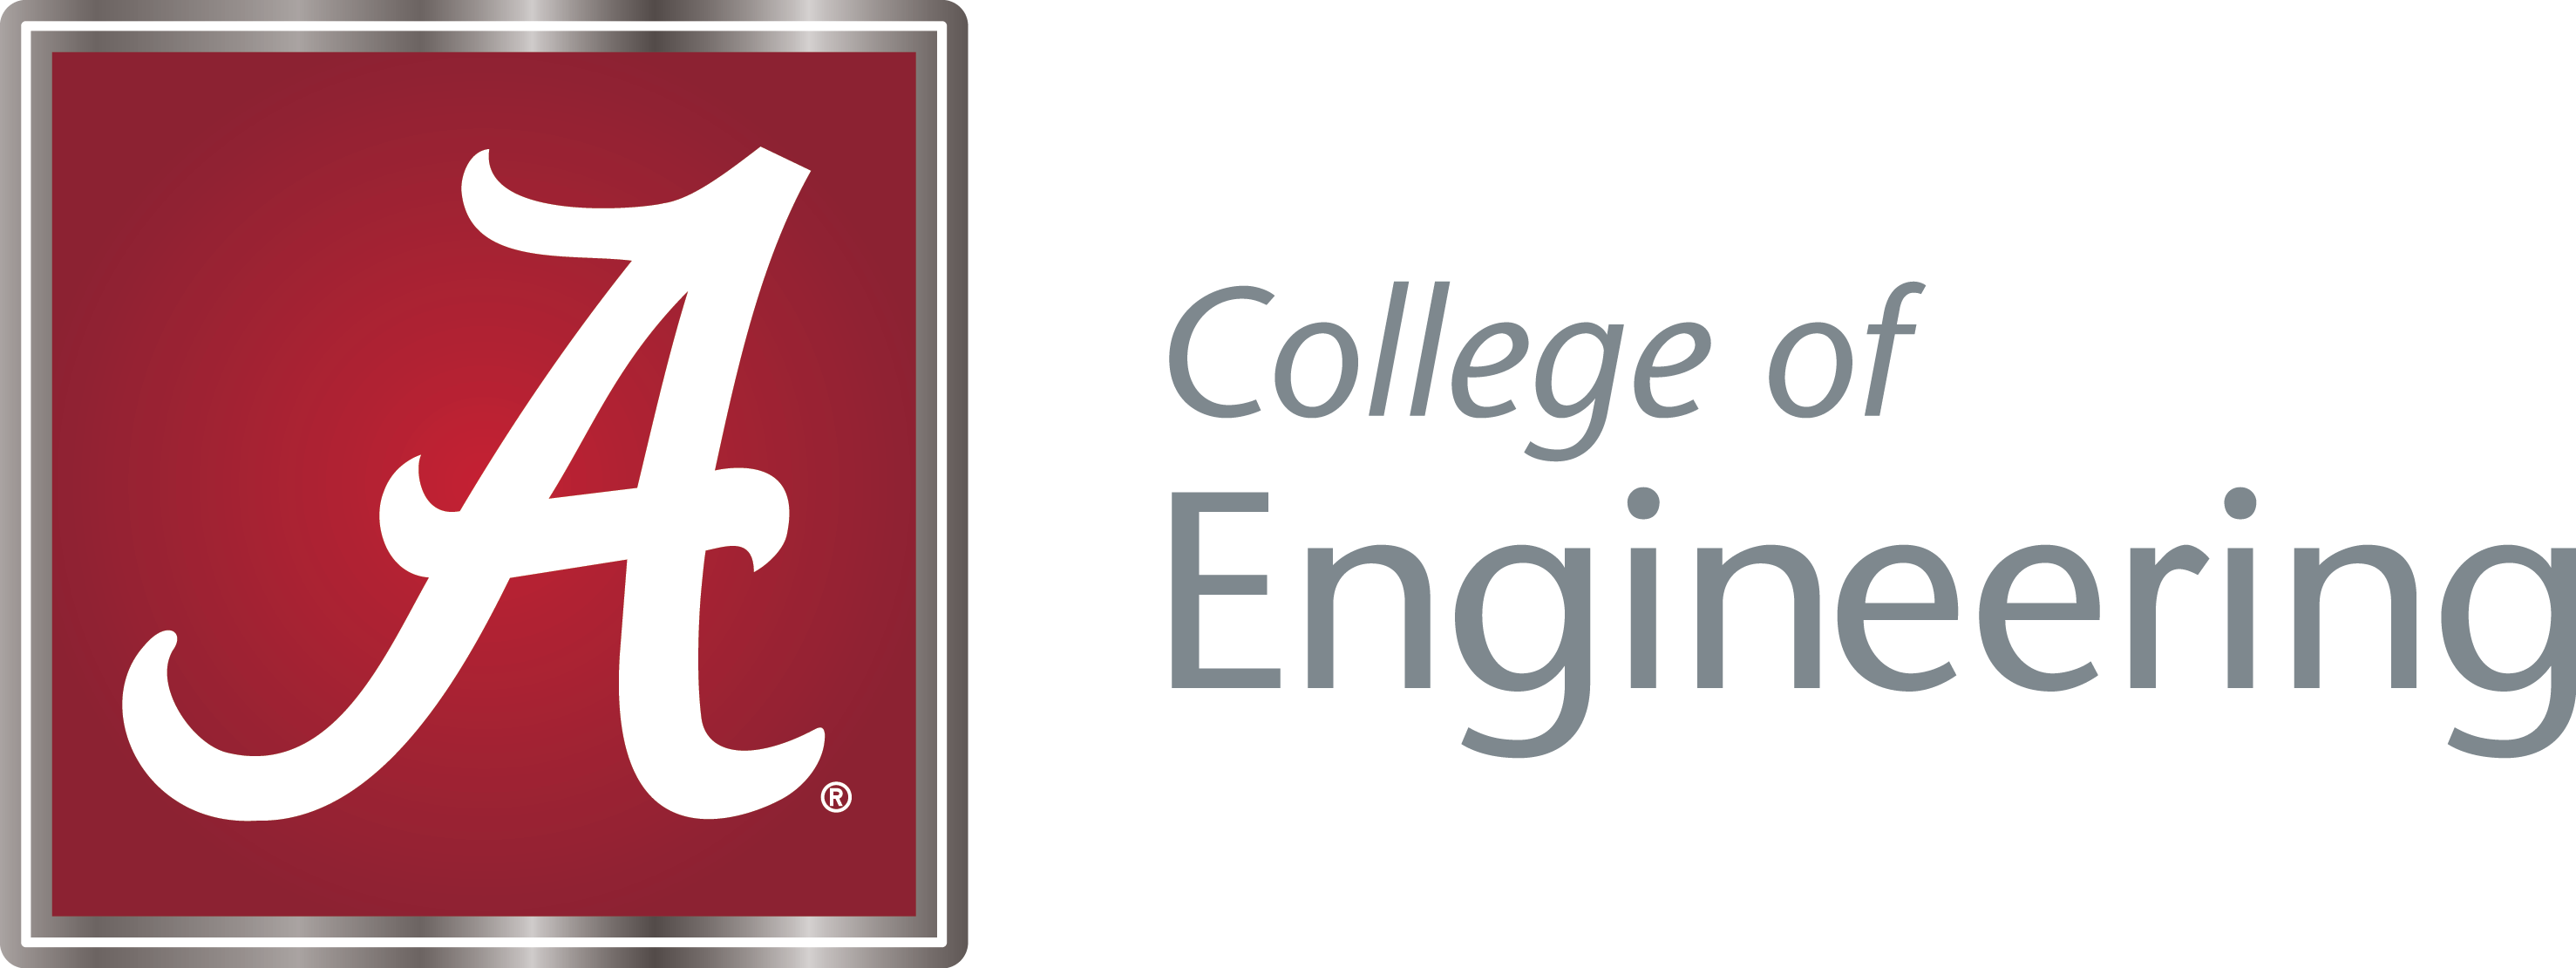 Capstone A College of Engineering Identifier.